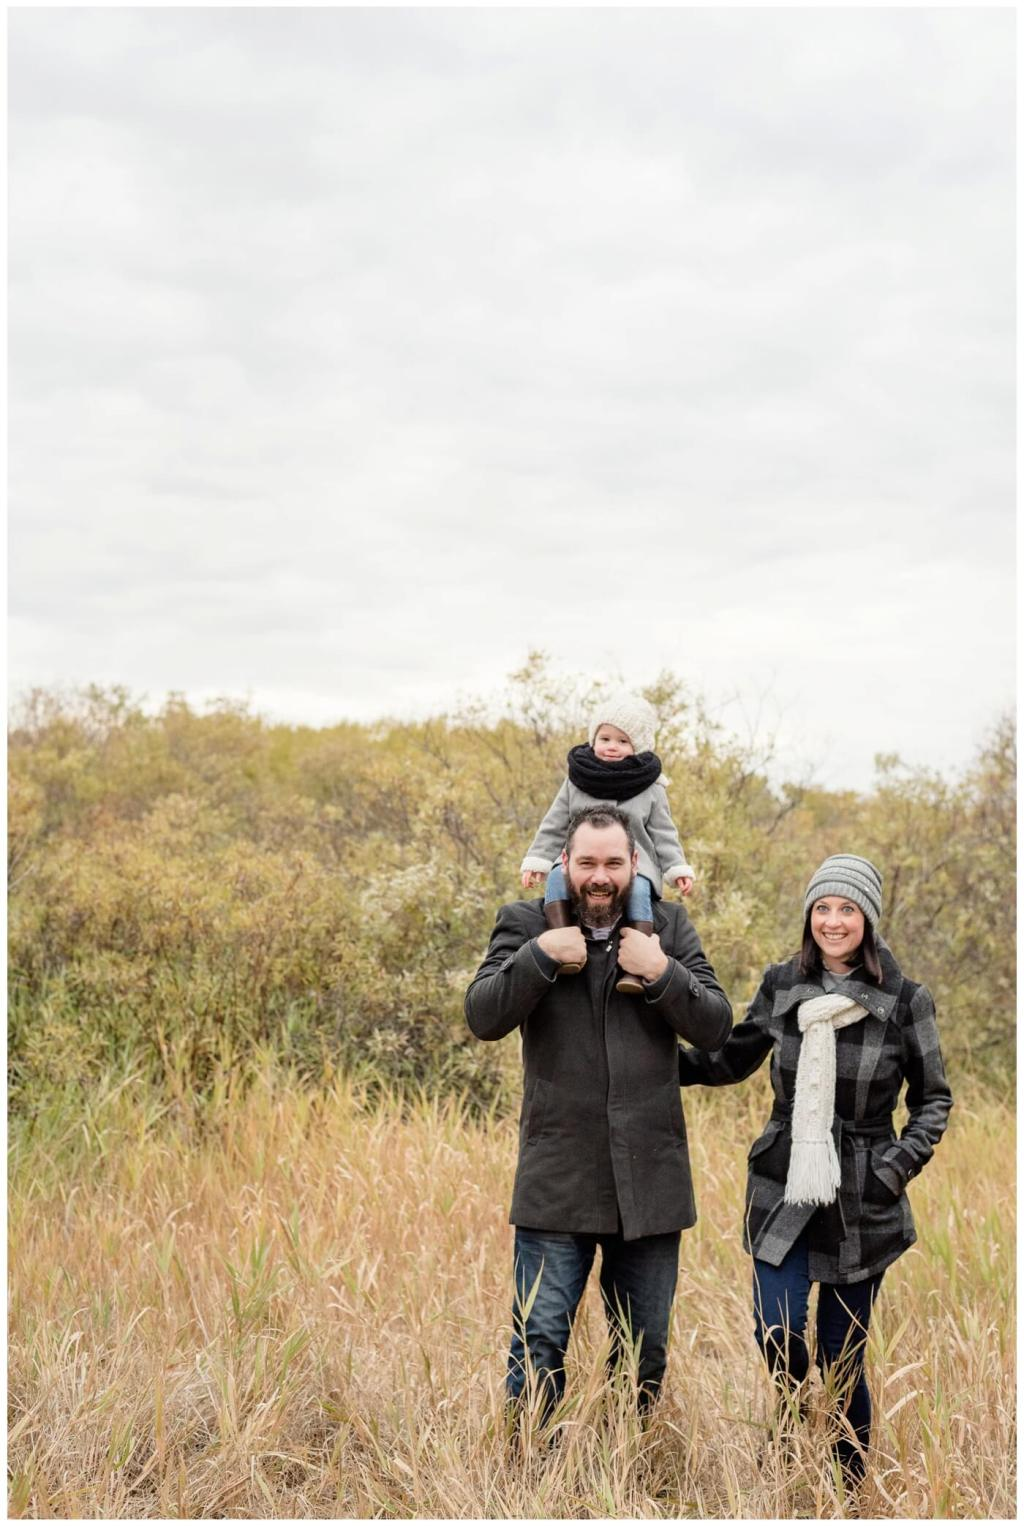 Regina Family Photography - Lisa-Kim-Valley - Fall Family - Wascana Trails